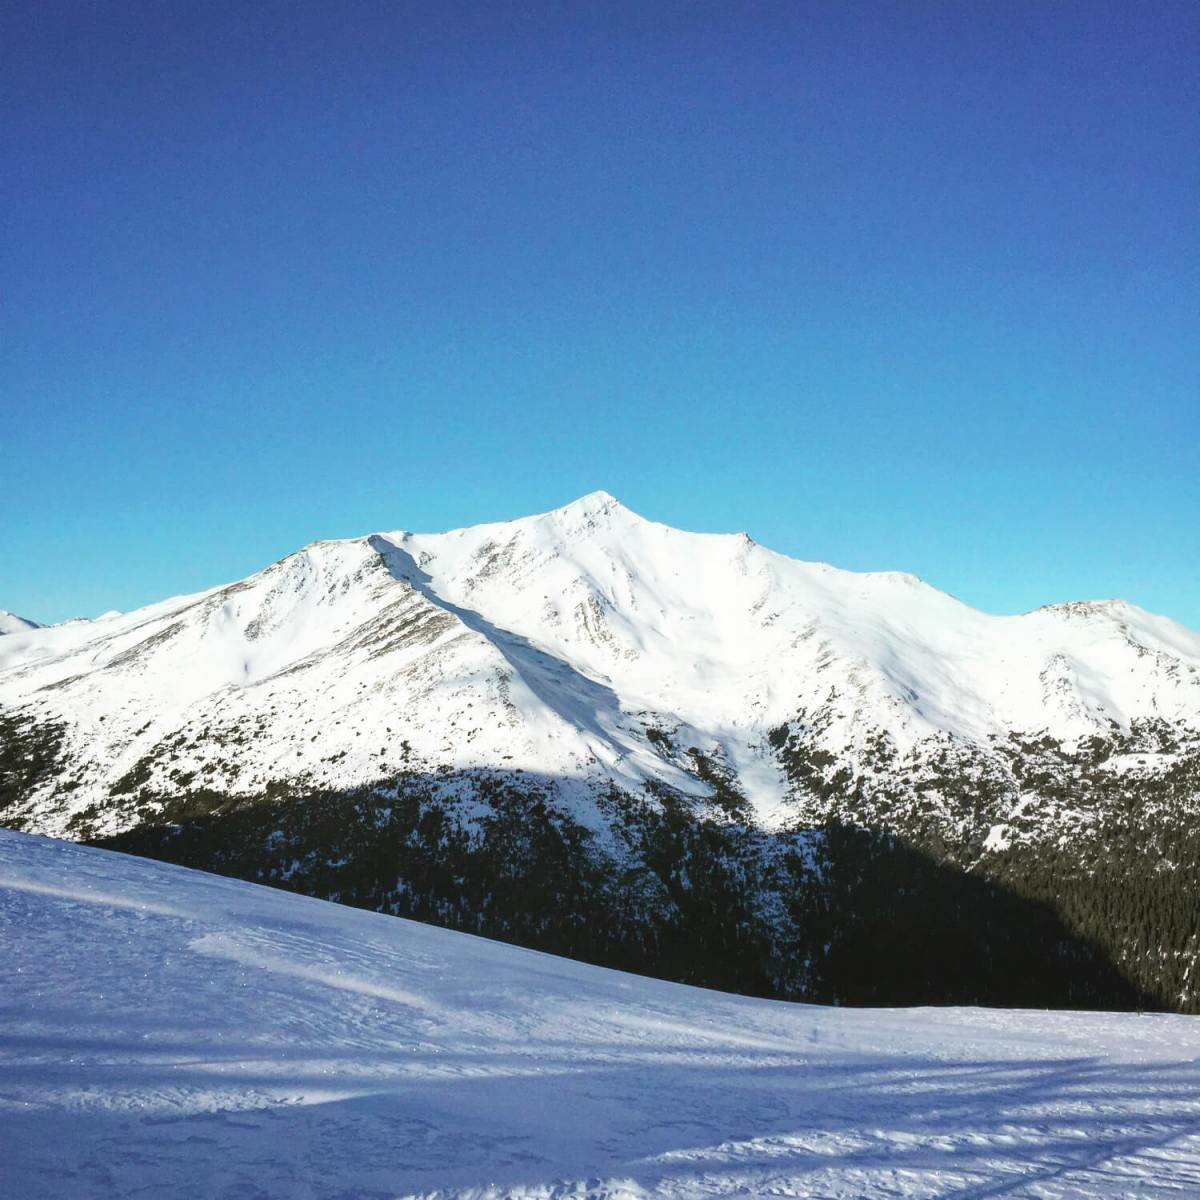 Recap: Weekend getaway to Jasper in January + Enter to Win Lift Passes to Marmot Basin!